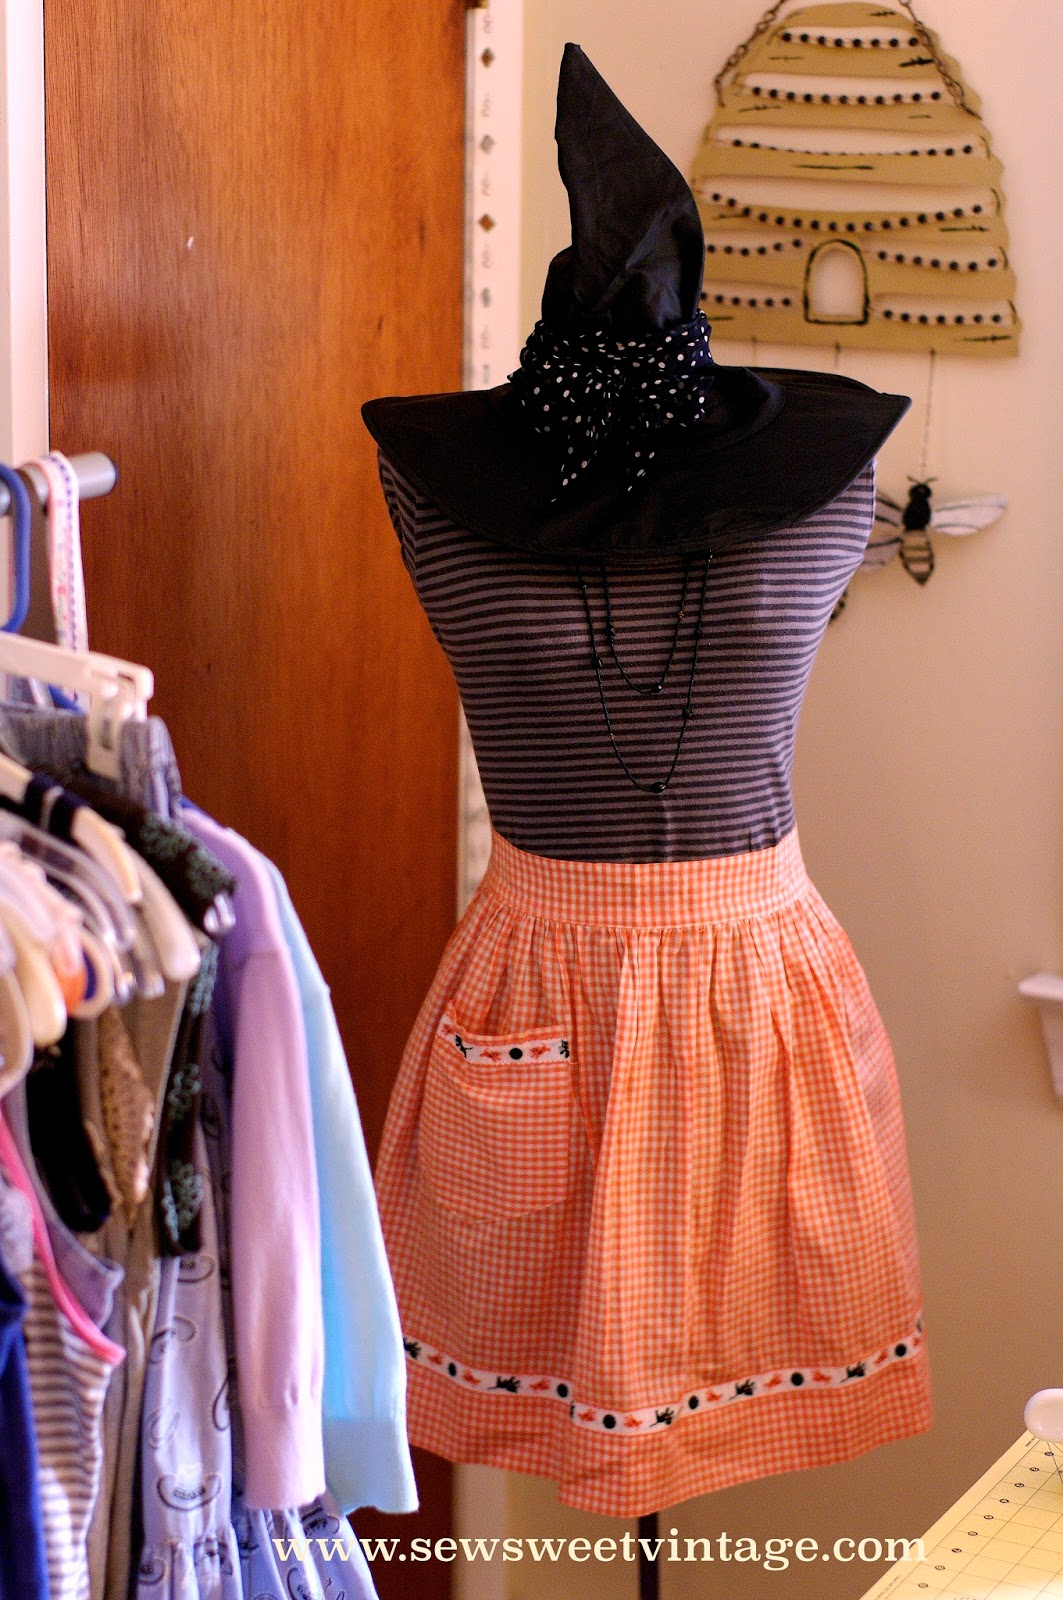 sewing, manaquin, halloween, witch hat, apron